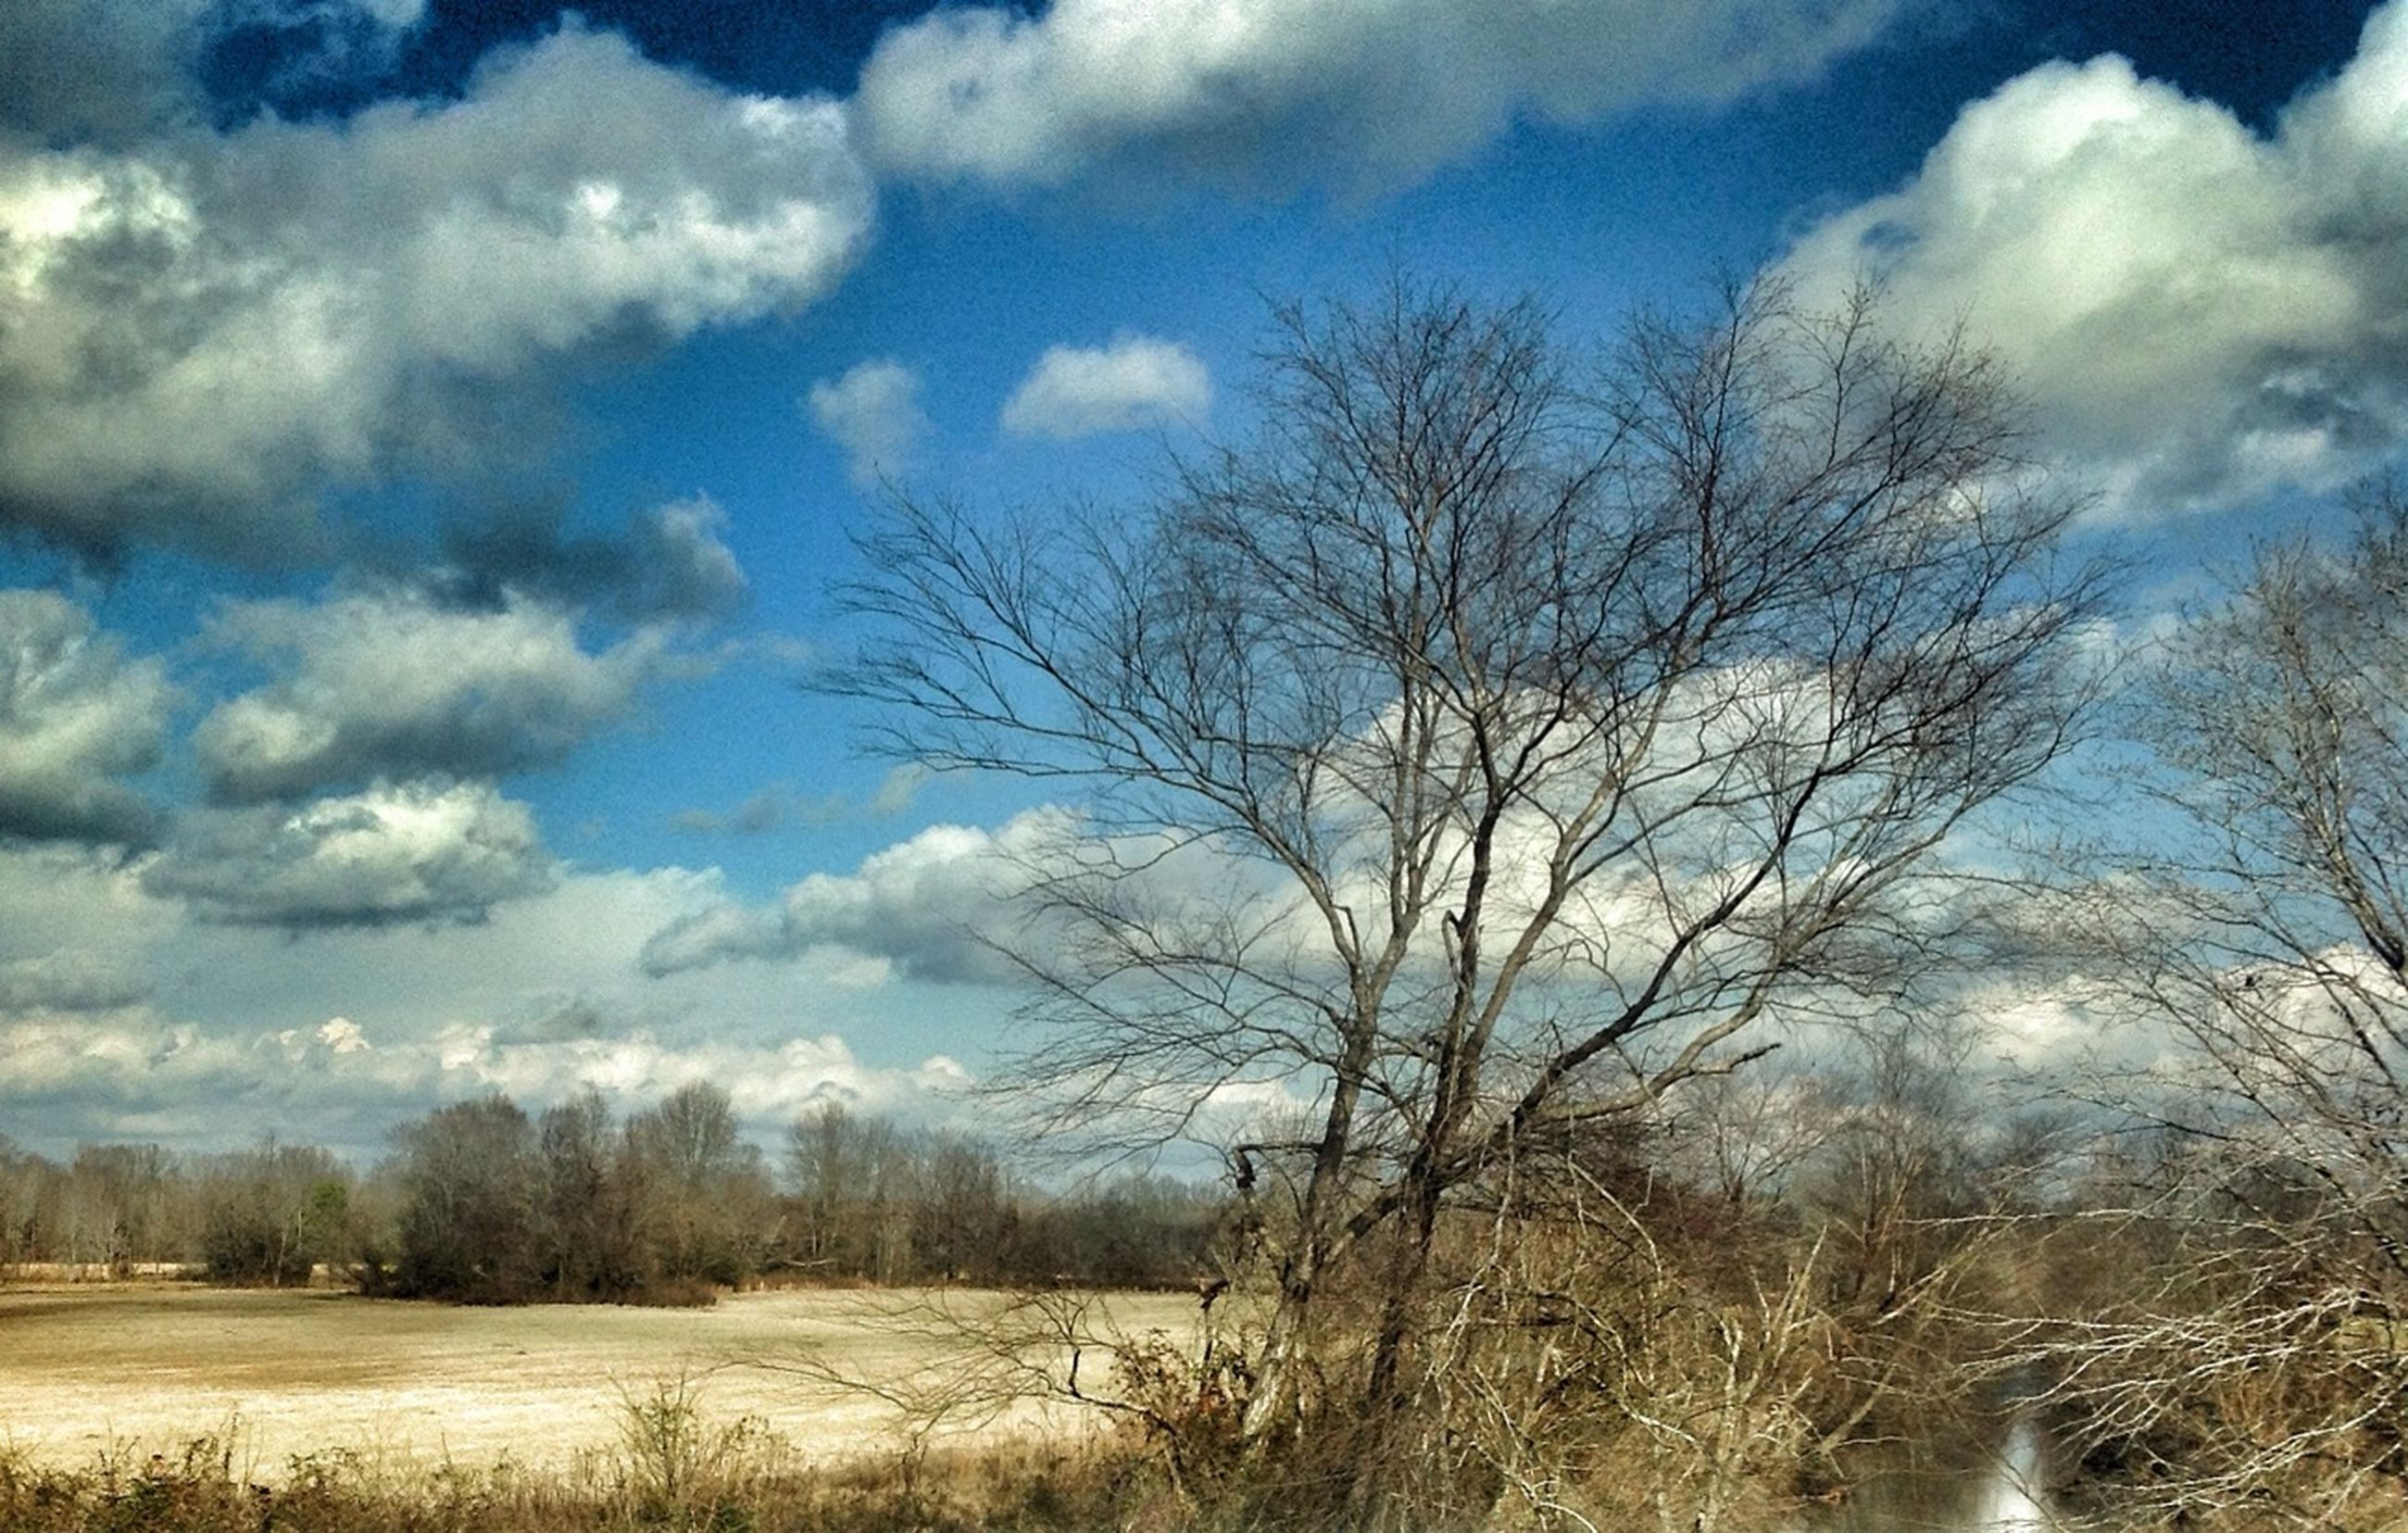 sky, tree, bare tree, tranquility, cloud - sky, tranquil scene, field, landscape, nature, scenics, cloud, beauty in nature, grass, cloudy, growth, branch, non-urban scene, day, outdoors, remote